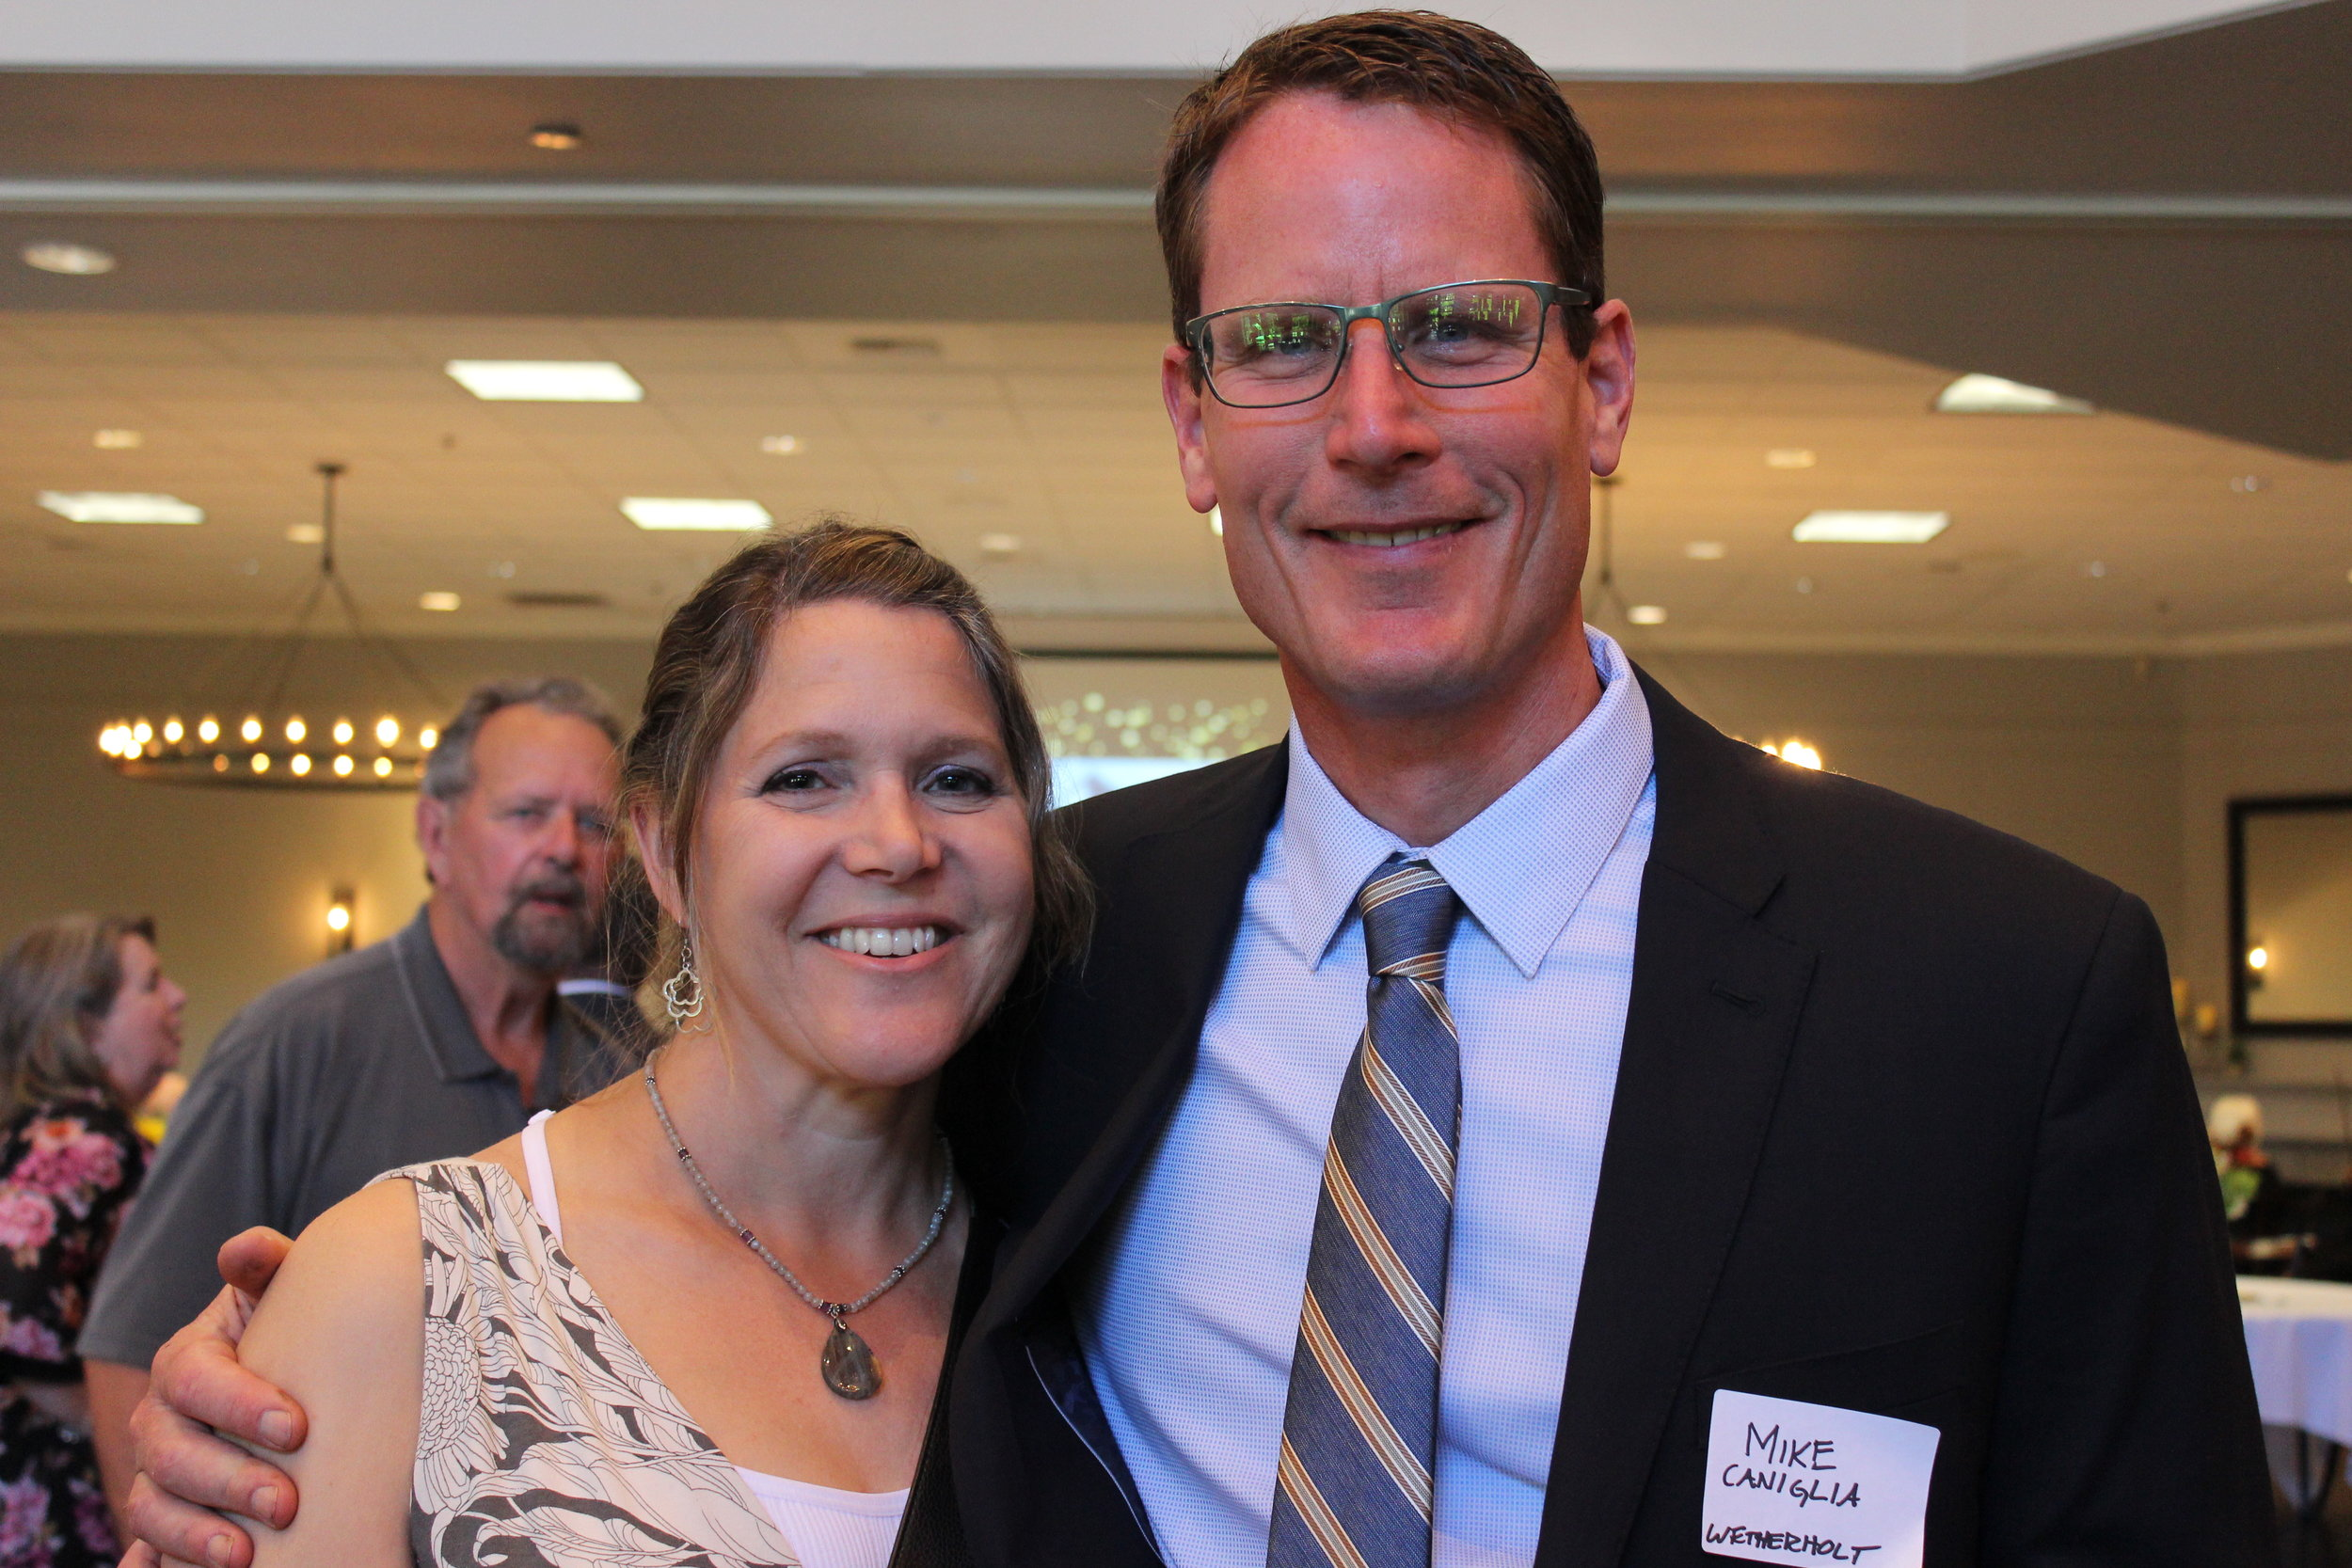 Wetherholt Principal, Mike Caniglia, with his wife, Lauri